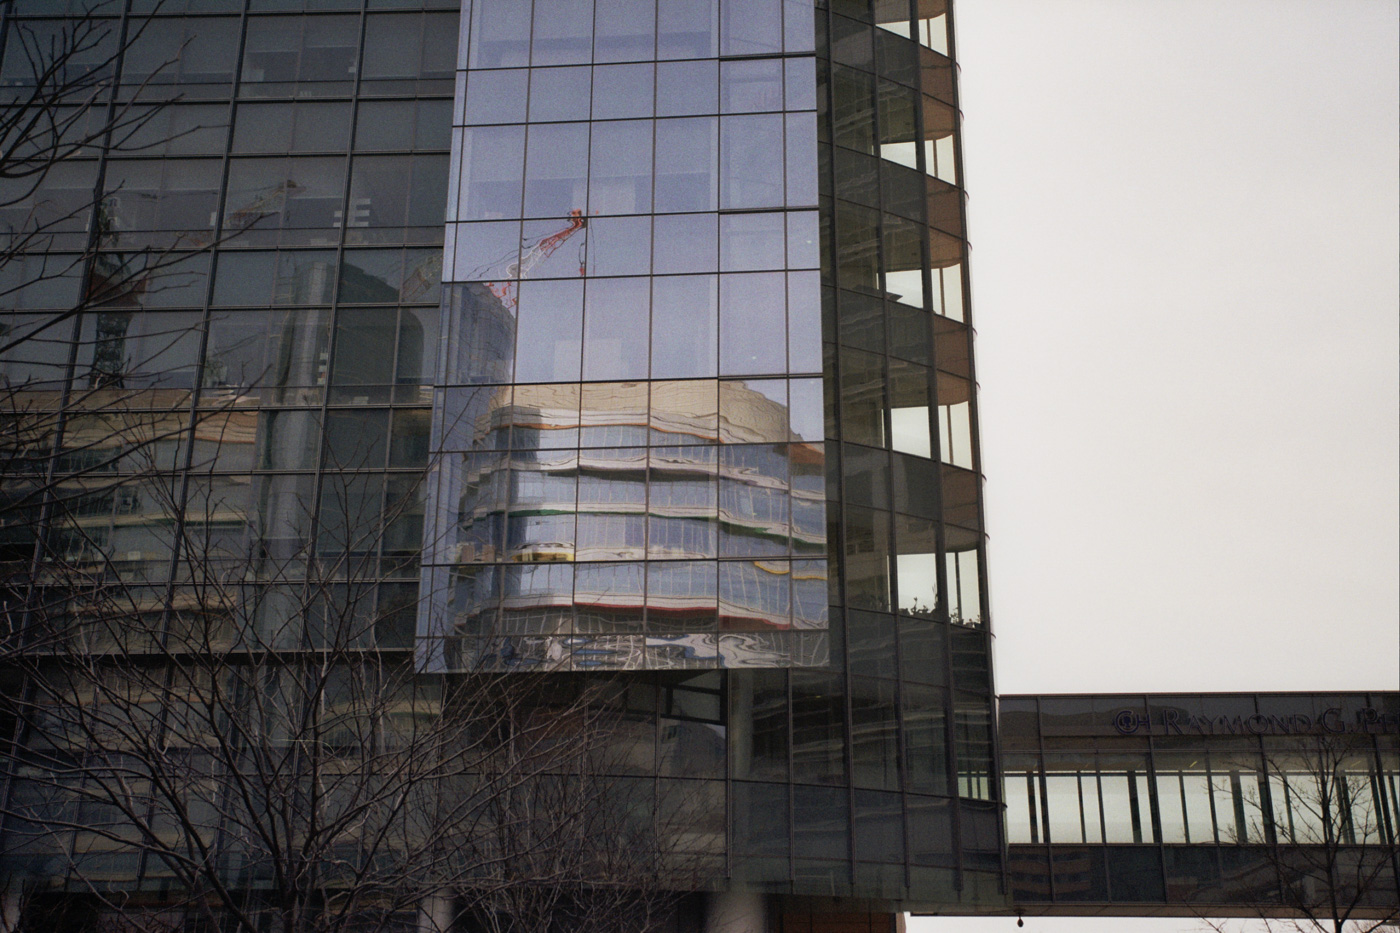 Reflection of the CHOP Buerger Center